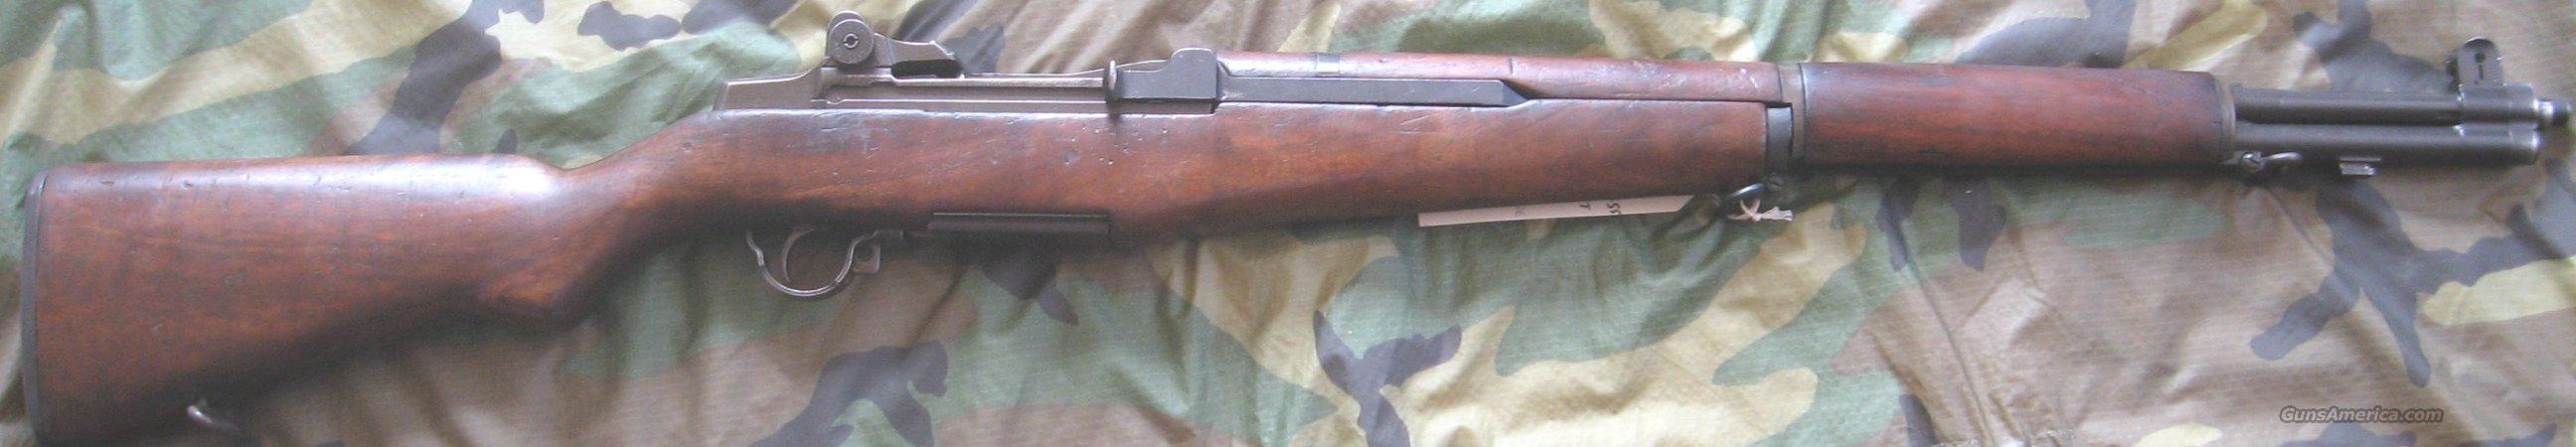 H&R Documented Garand Rifle, Make Offer!  Guns > Rifles > Military Misc. Rifles US > M1 Garand